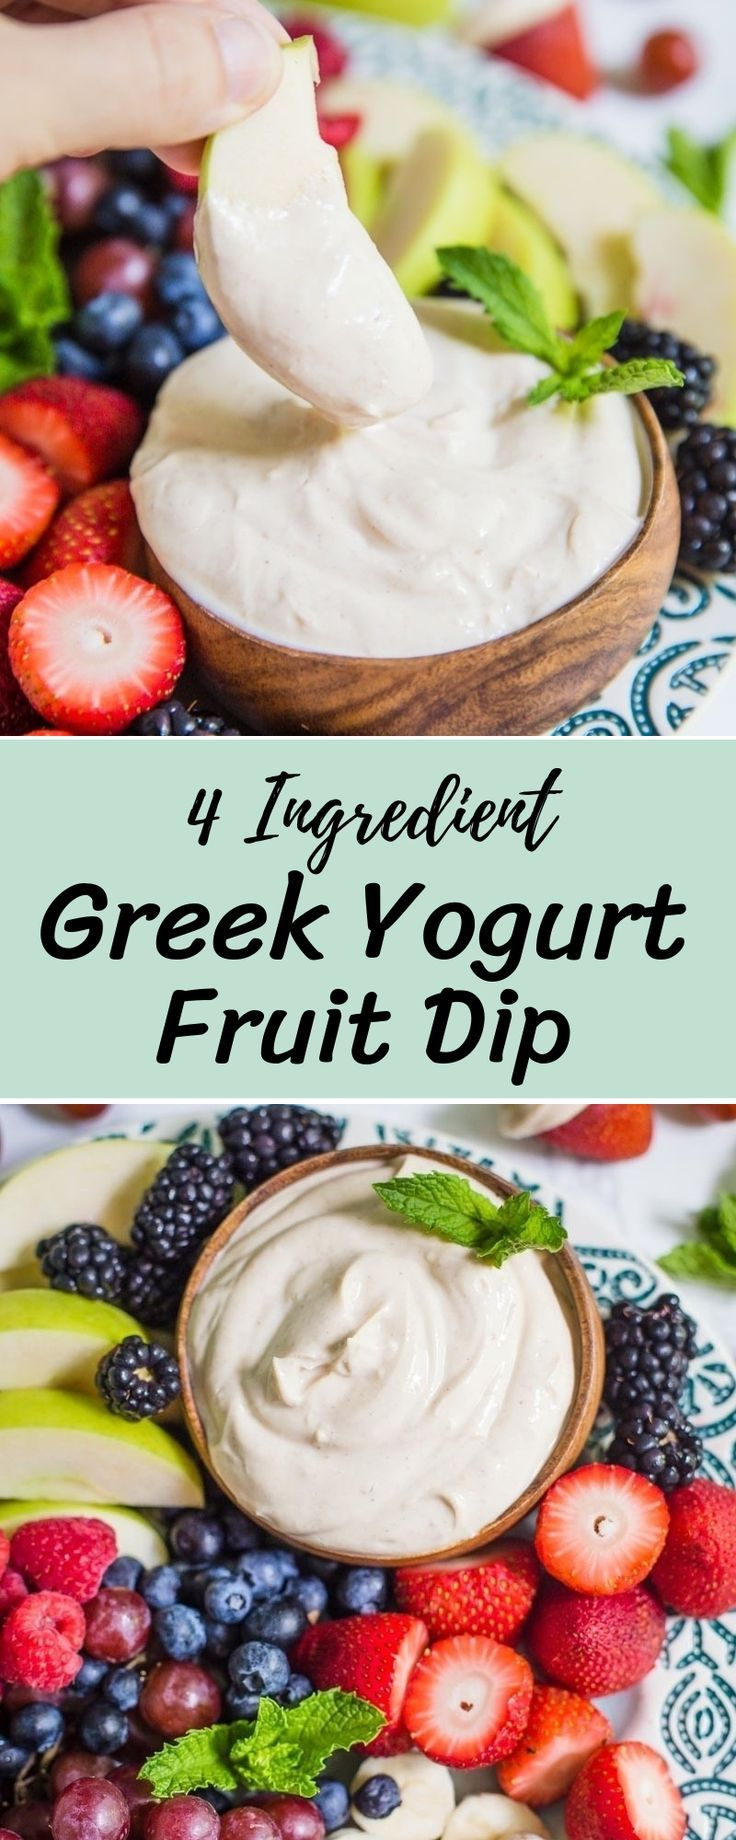 4 Ingredient Greek Yogurt Fruit Dip Recipe Healthy Meal